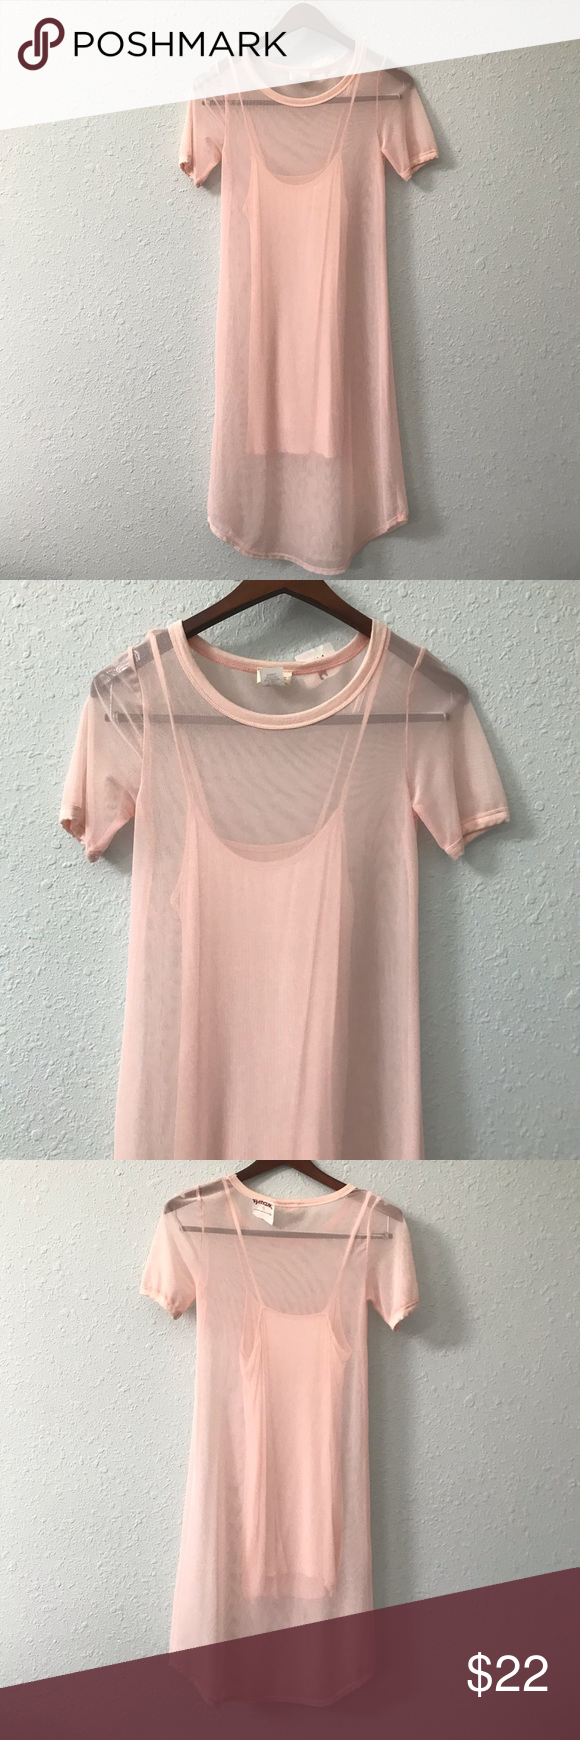 371fda82f2d1 NWT Caution to the Wind blush sheer T-shirt dress This lightweight blush  colored sheer T-shirt dress from Caution to the Wind is perfect to wear  underneath ...